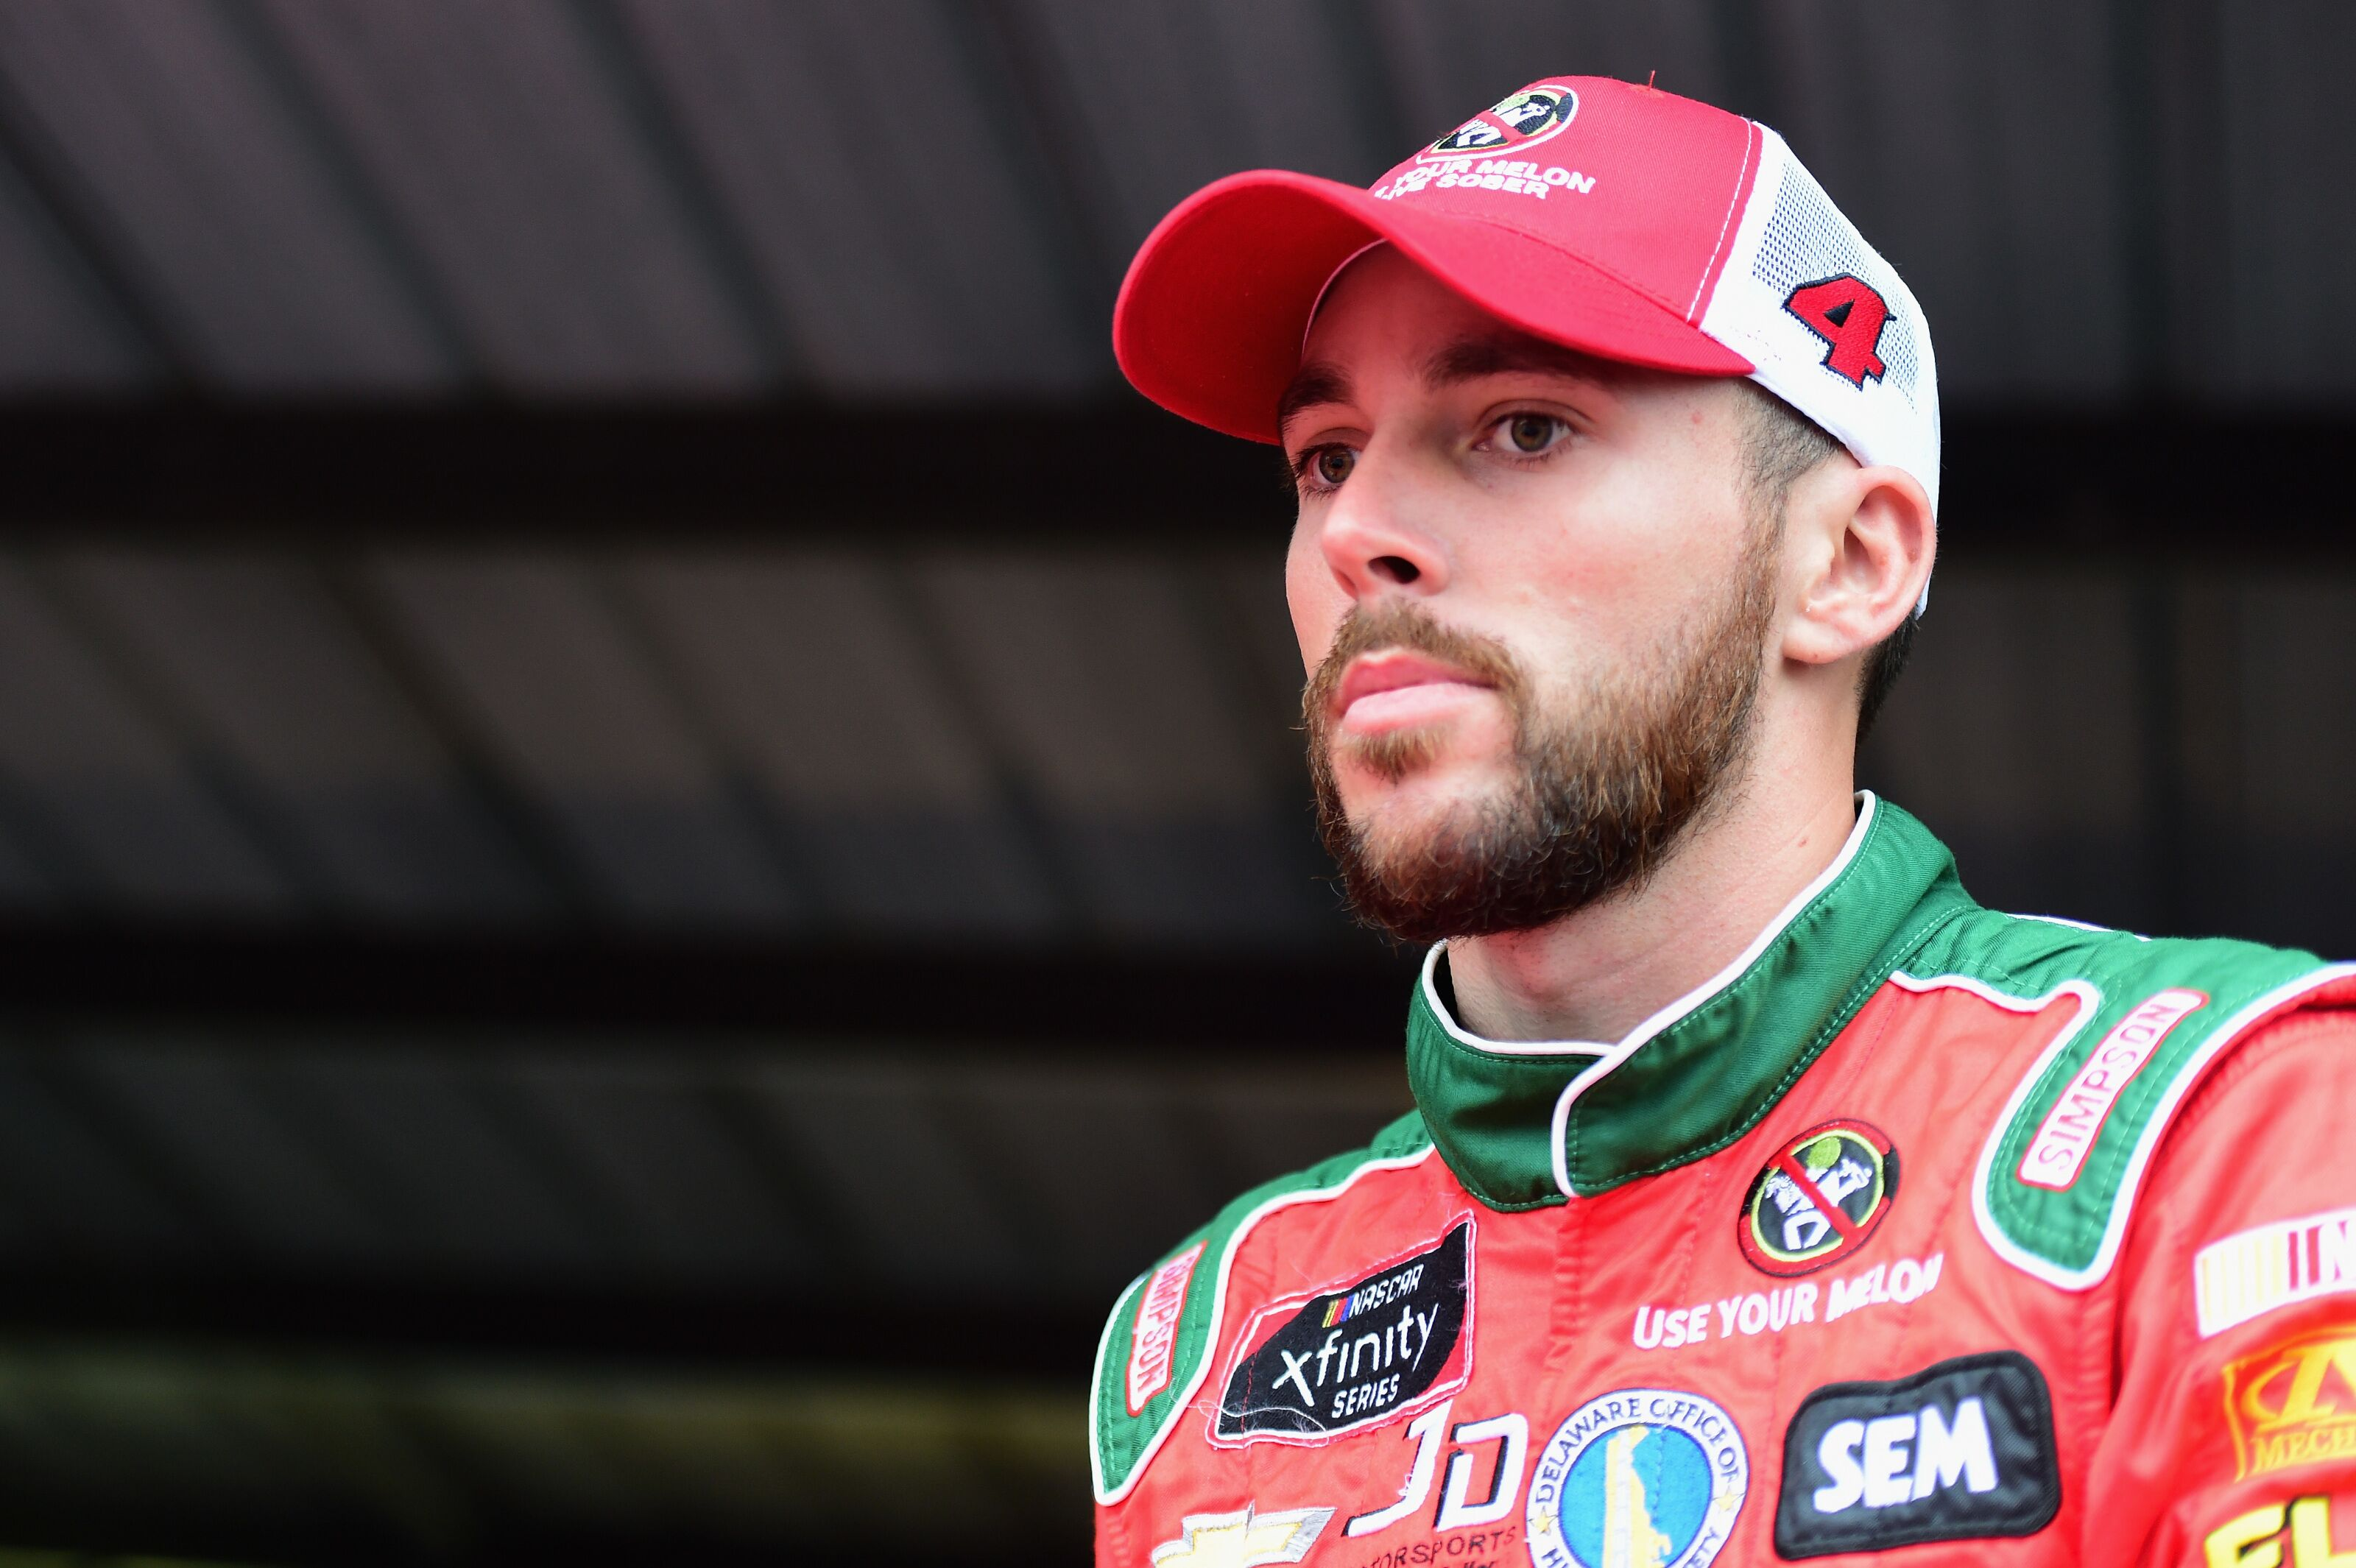 d1d81b72eb7 NASCAR Xfinity Series  Ross Chastain to run full 2019 schedule for two teams